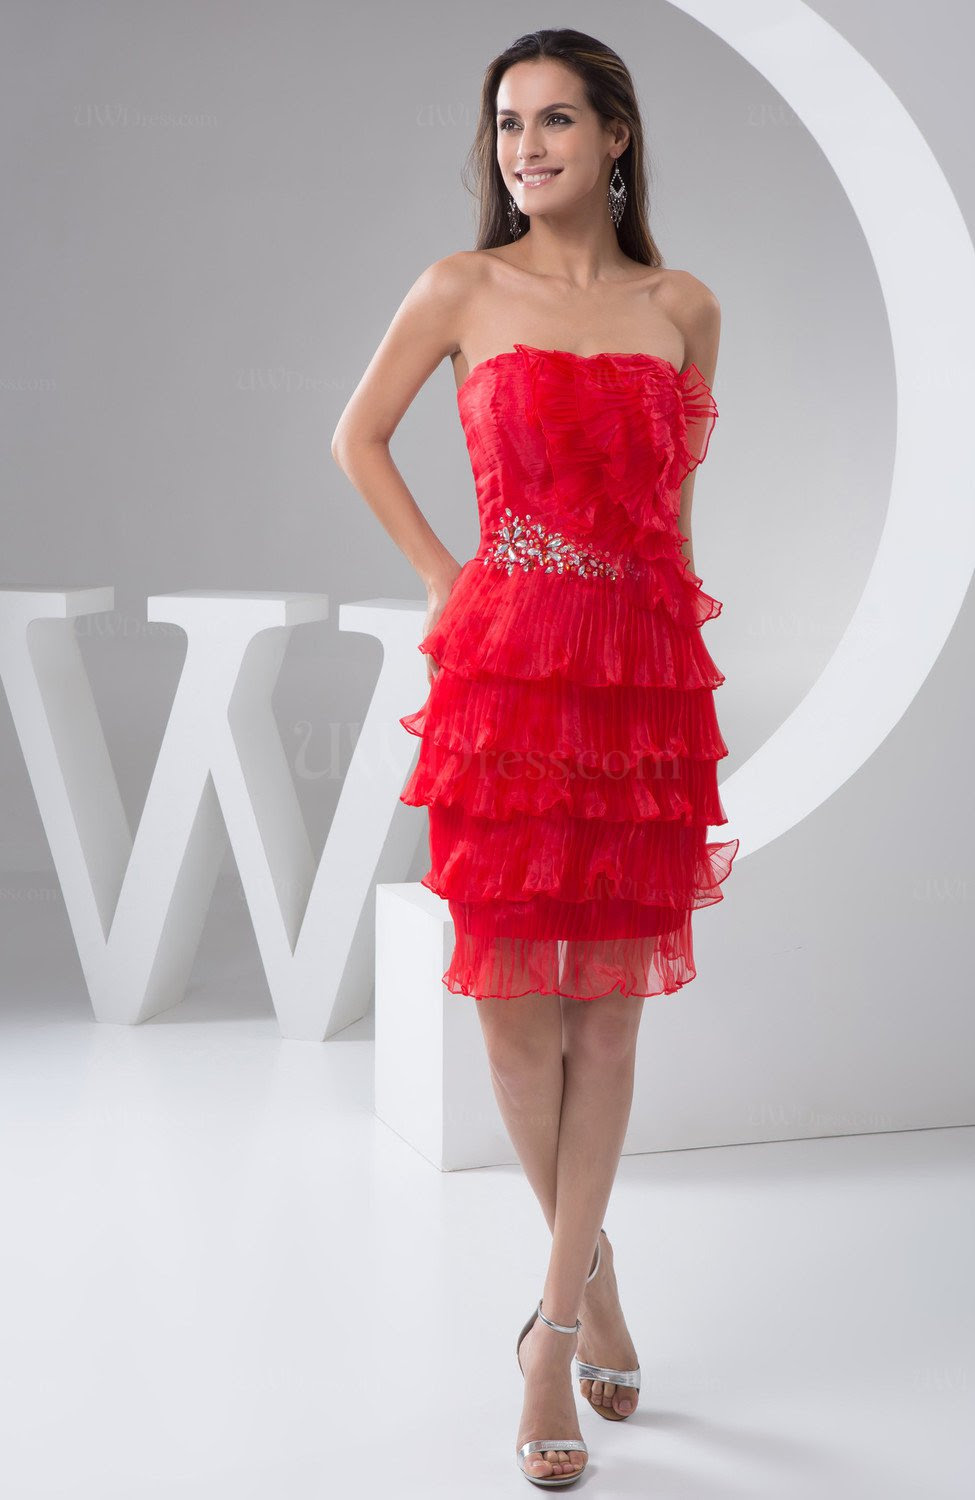 Semi formal dresses to wear to a wedding